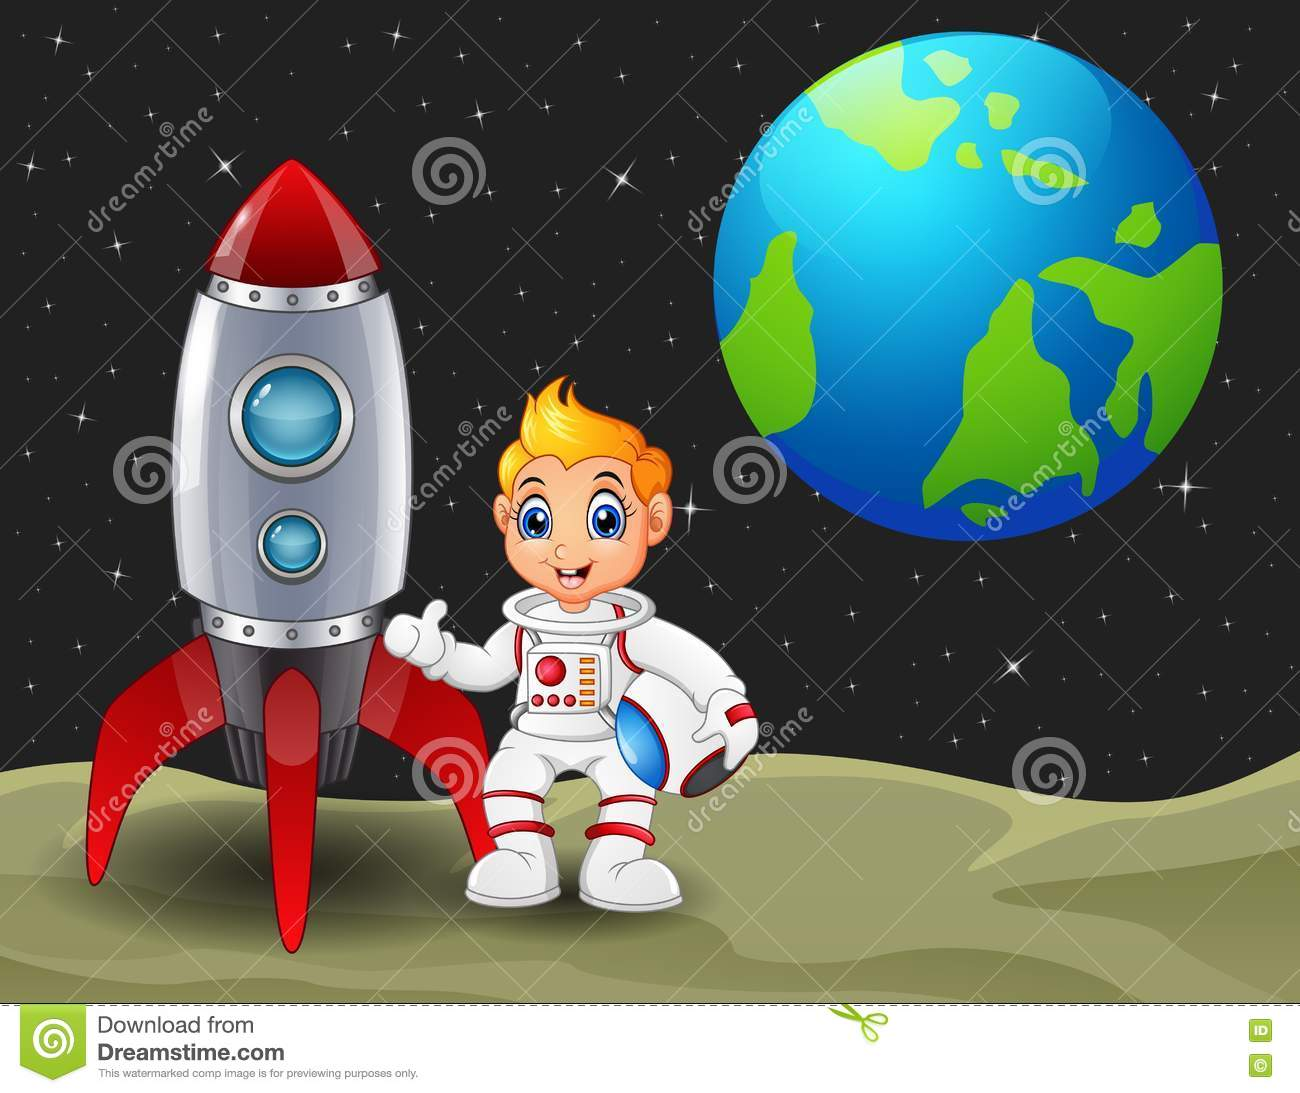 Cartoon Astronaut Boy Holding A Helmet And Rocket Space Ship On The Moon With Planet Earth In Background